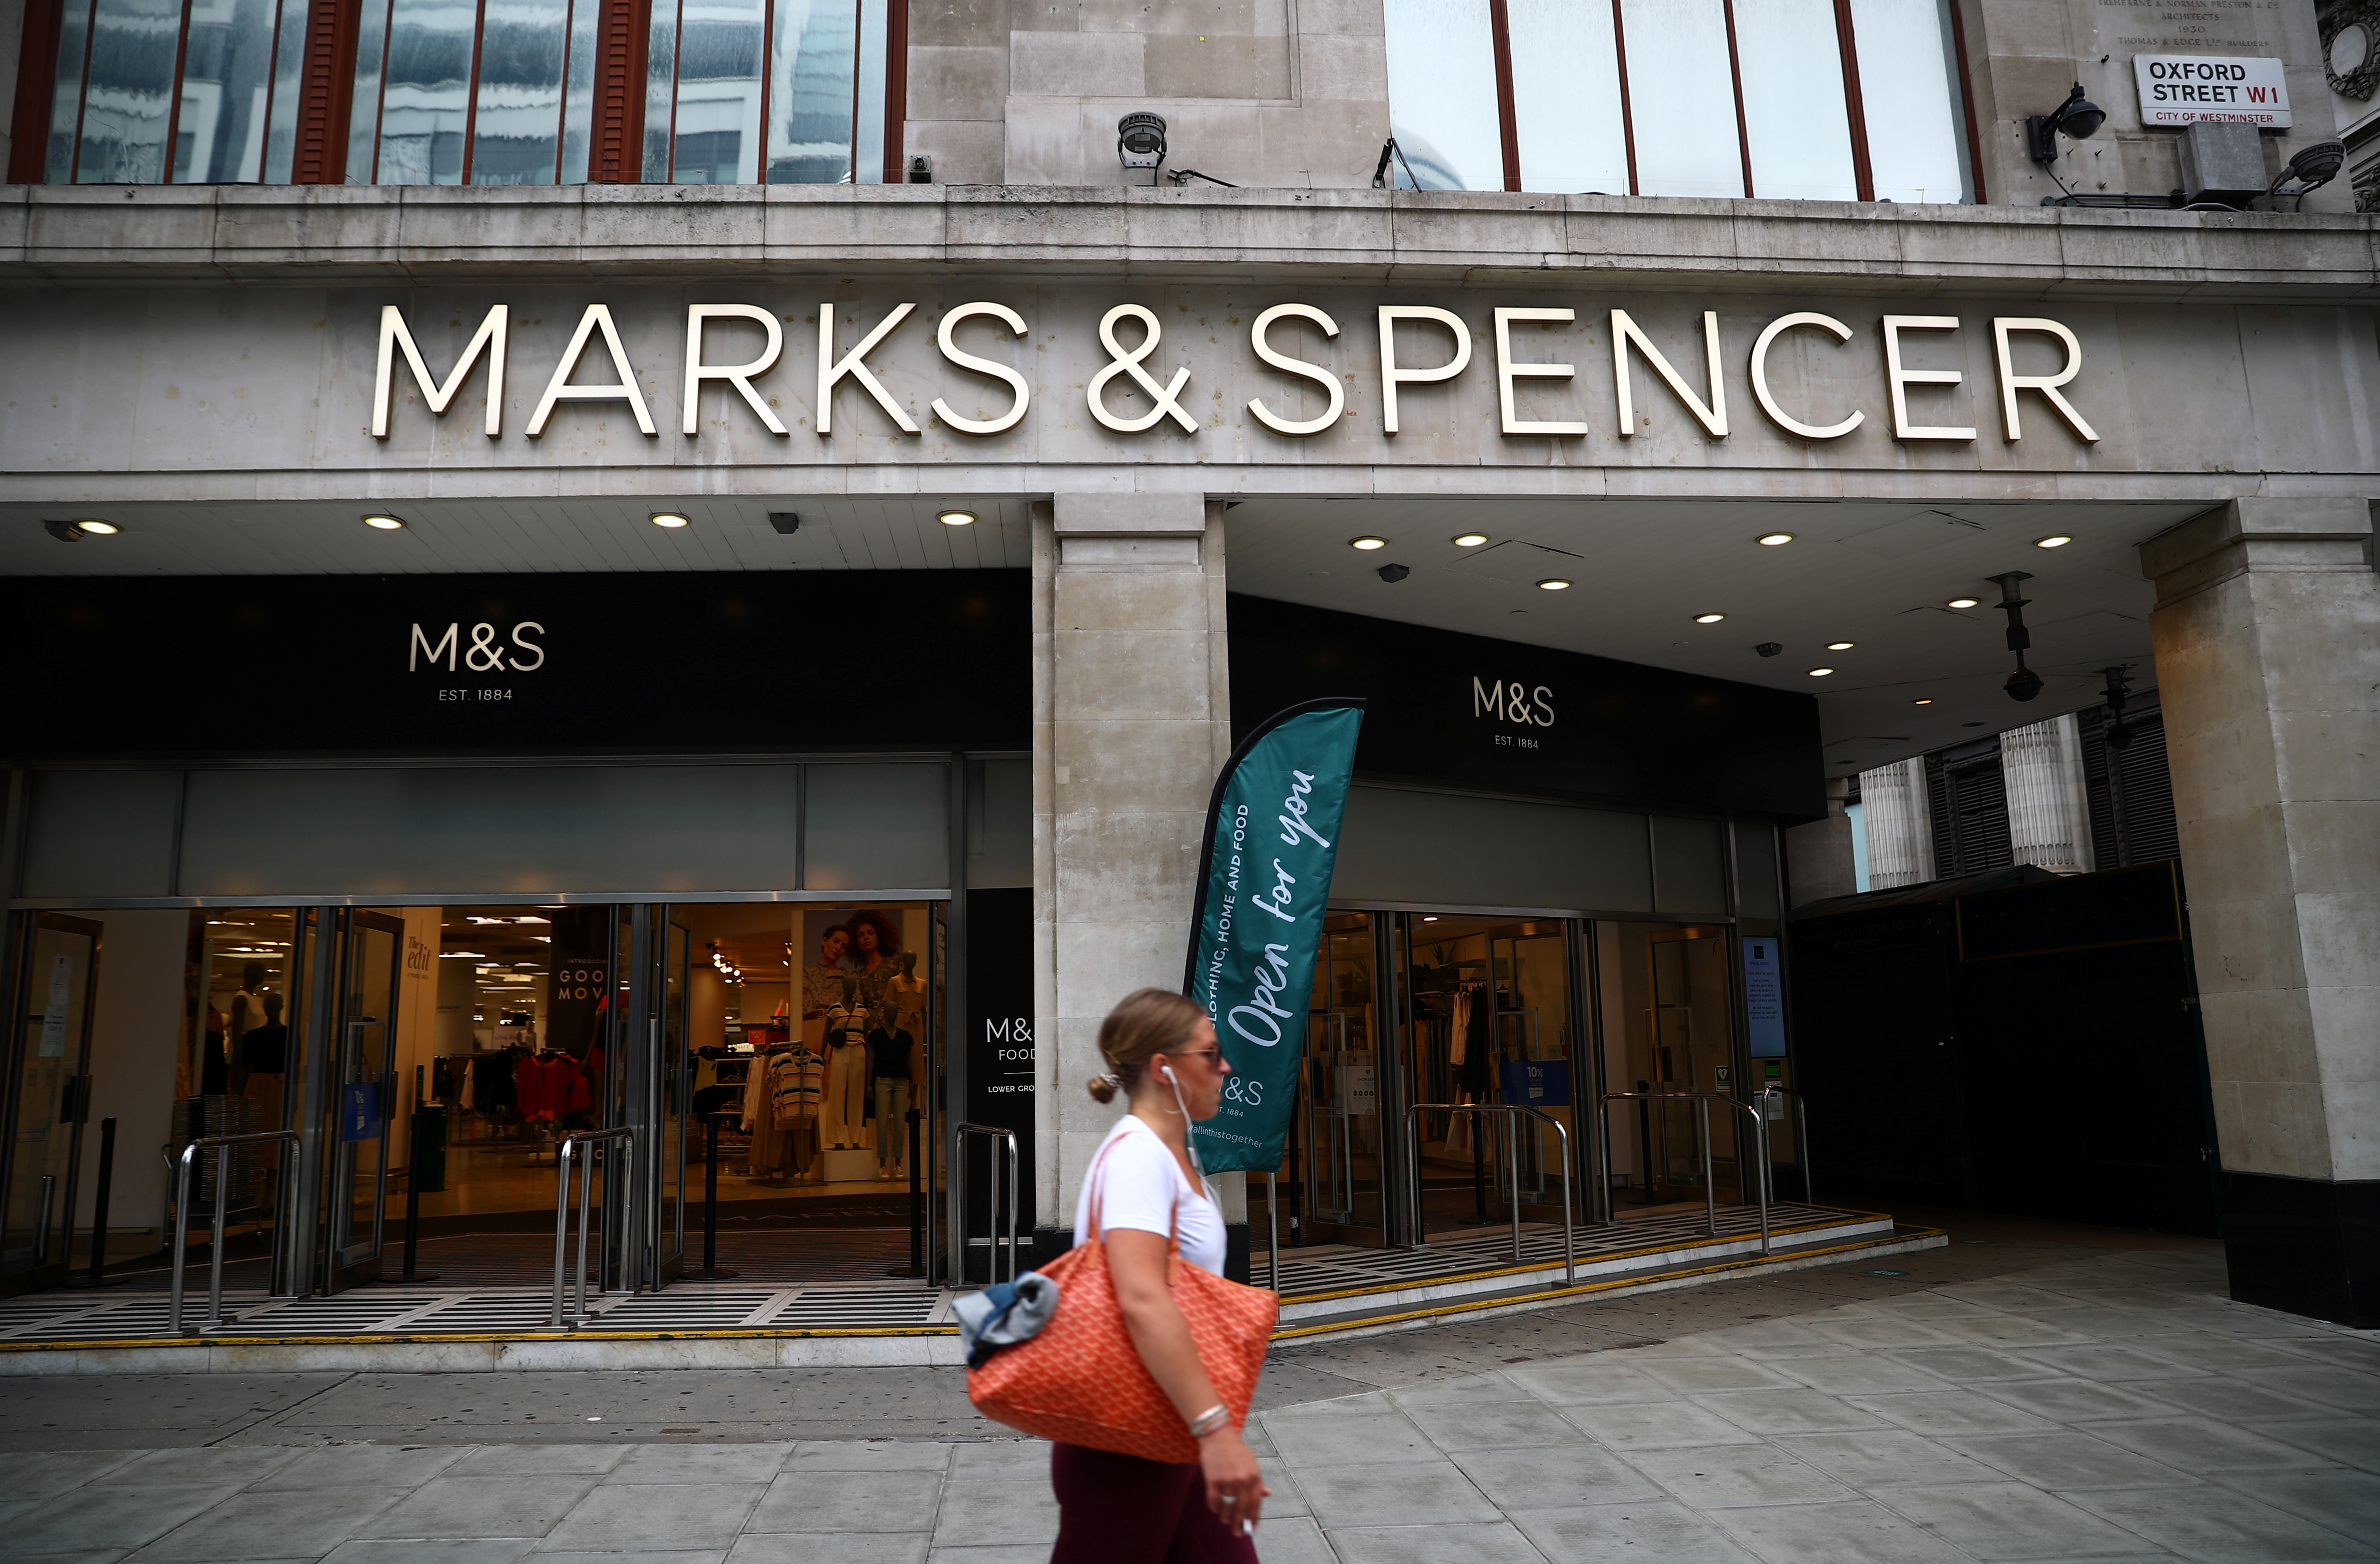 An entrance to a Marks and Spencer store is pictured at the Oxford Street, in London, Britain July 2, 2020. REUTERS/Hannah McKay/File Photo